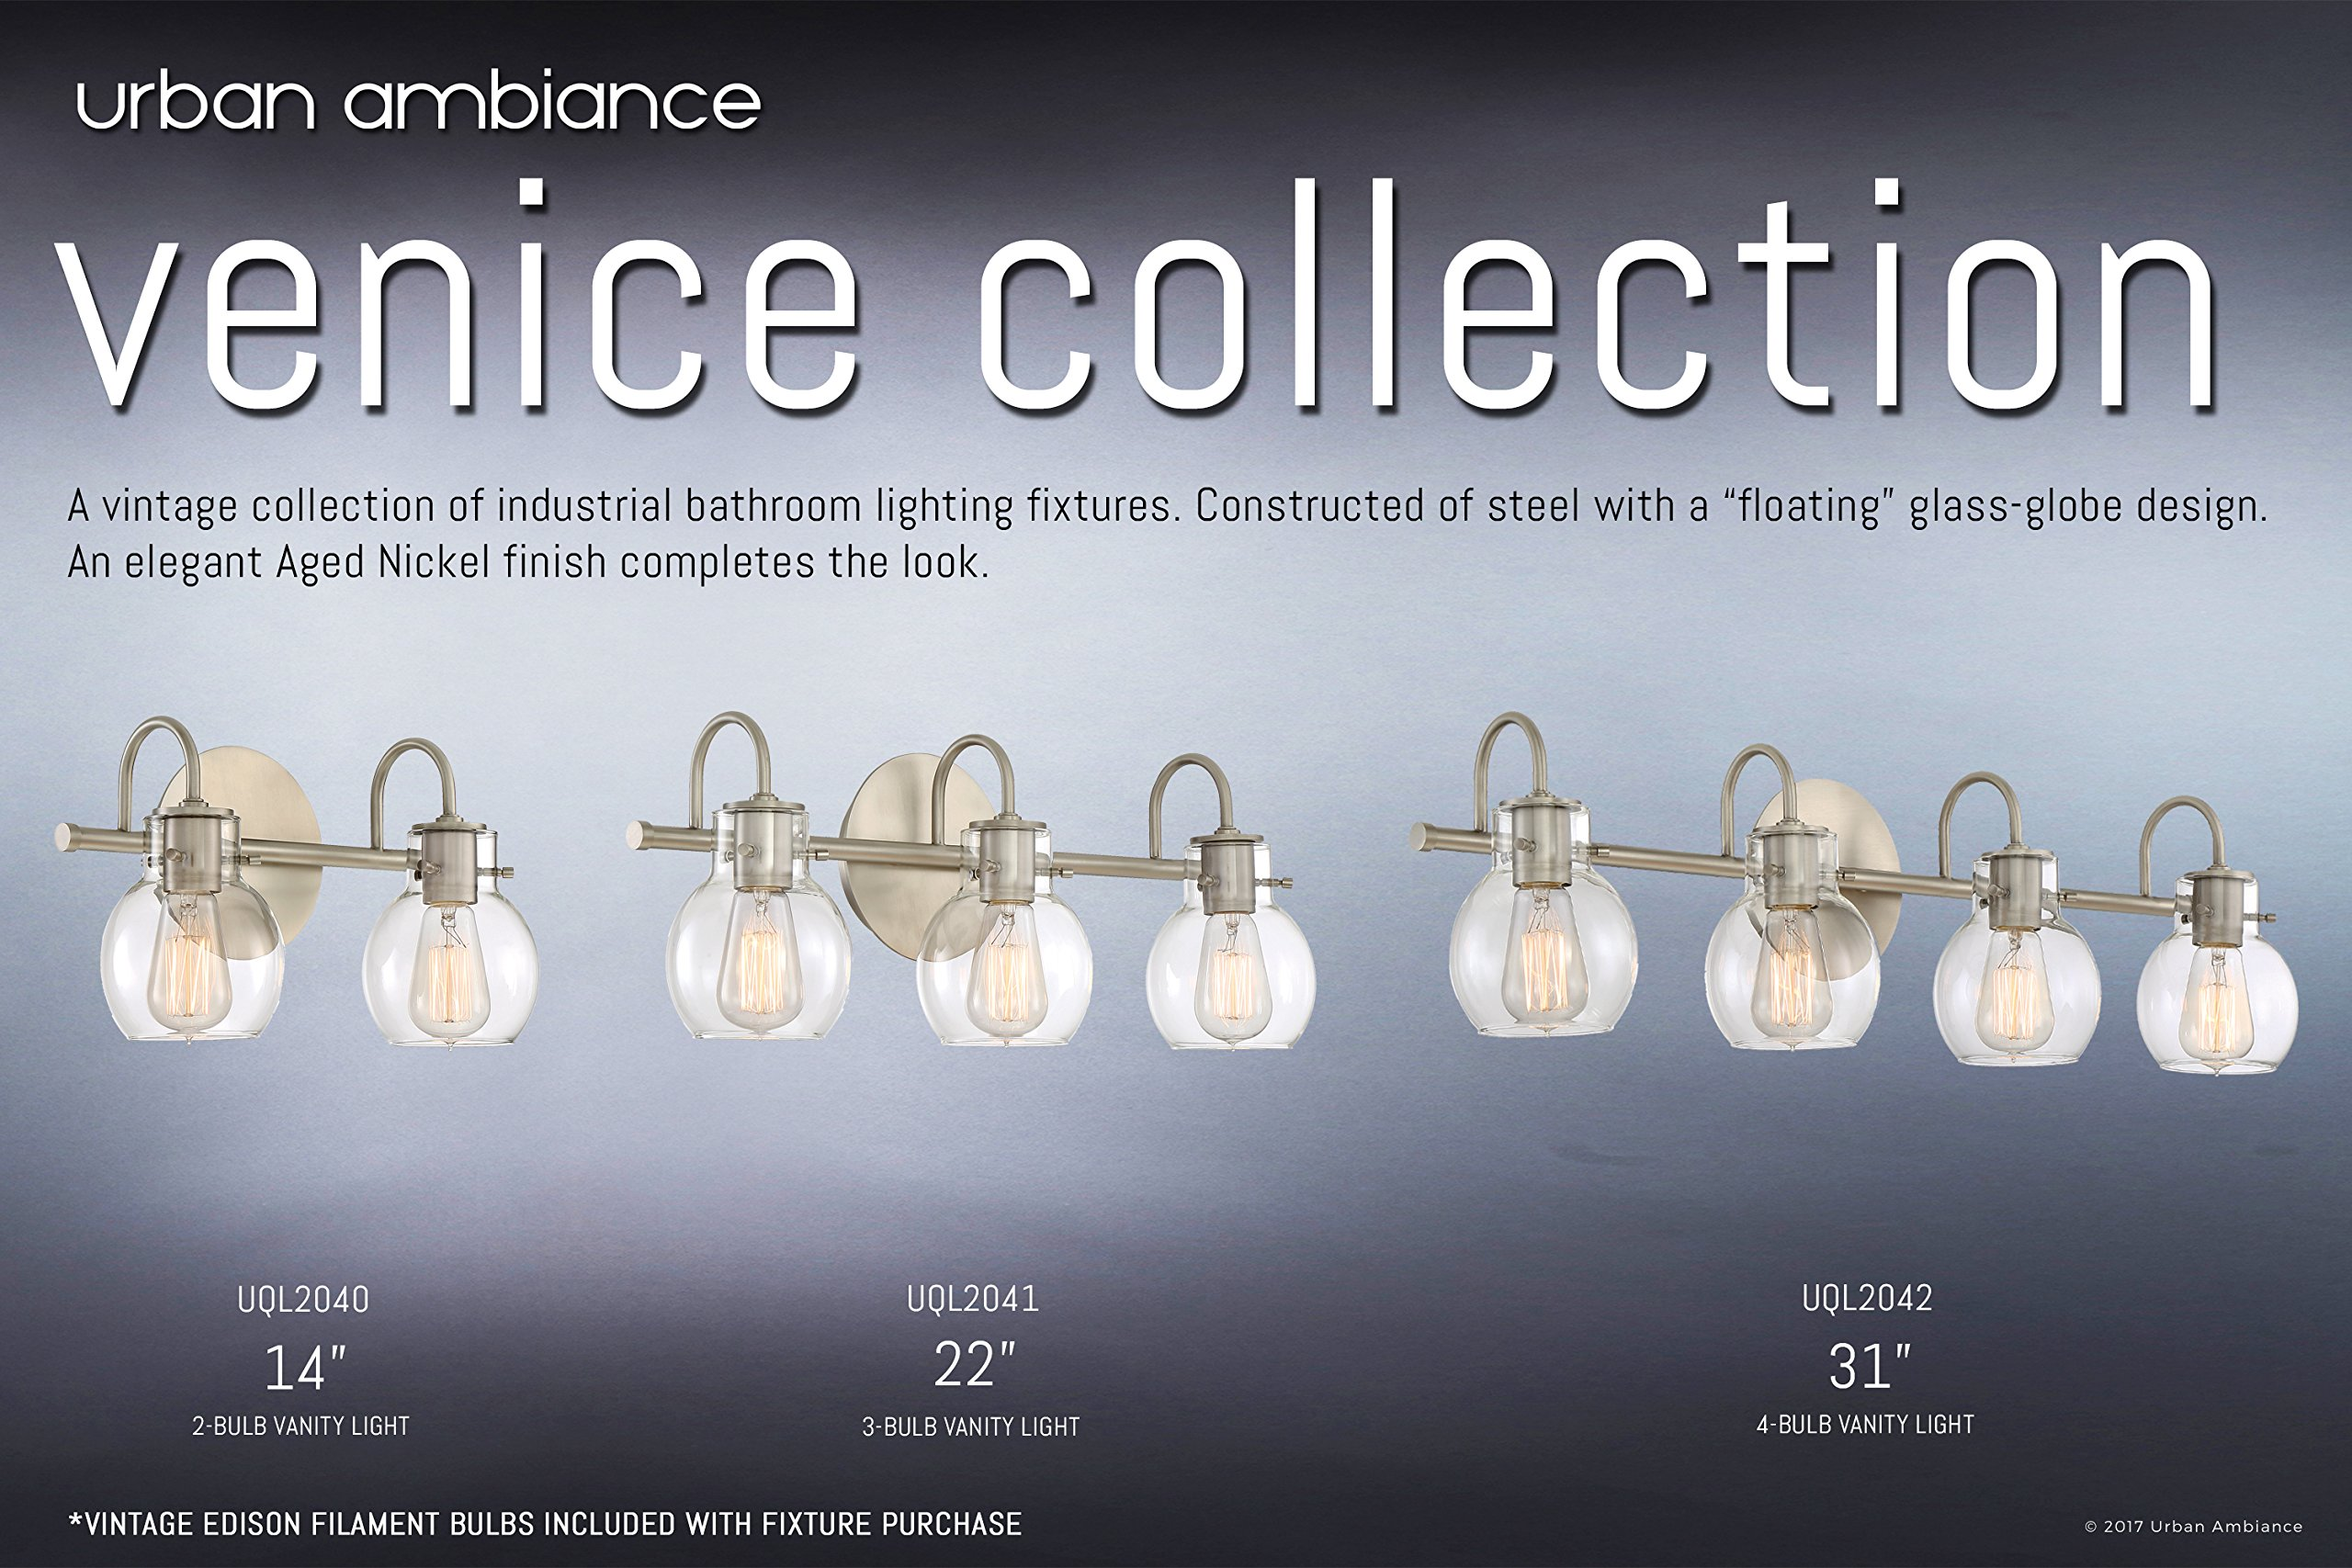 Luxury Vintage Bathroom Light, Medium Size: 9''H x 14''W, with Industrial Style Elements, Floating Glass Design, Aged Nickel Finish and Clear Glass, Includes Edison Bulbs, UQL2040 by Urban Ambiance by Urban Ambiance (Image #6)